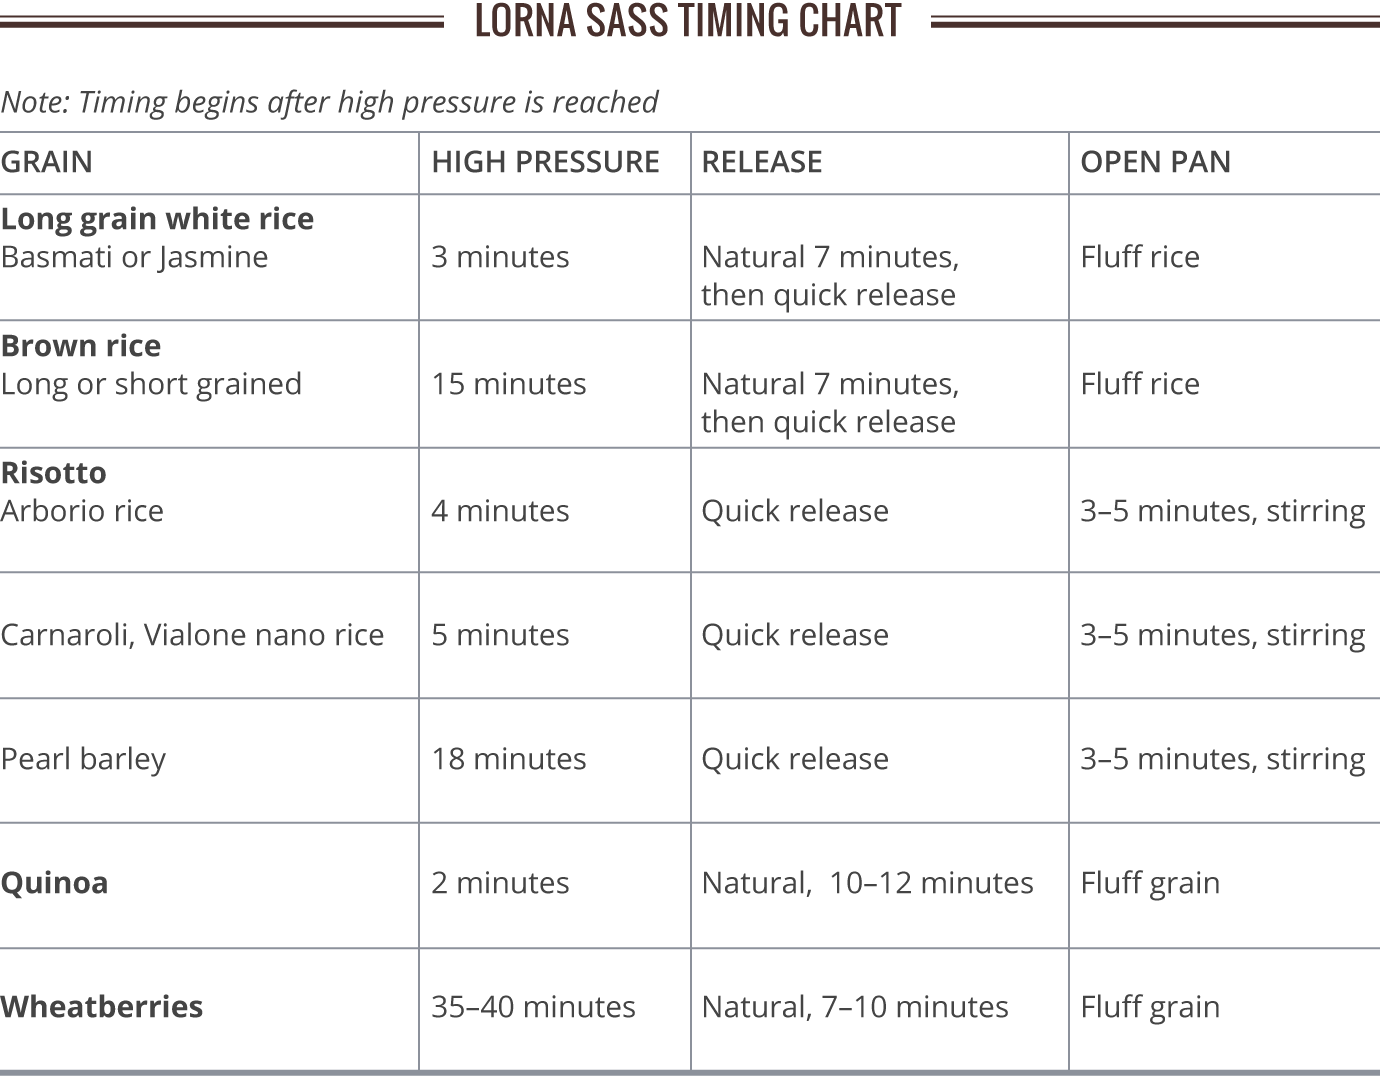 Lorna Sass Timing Chart